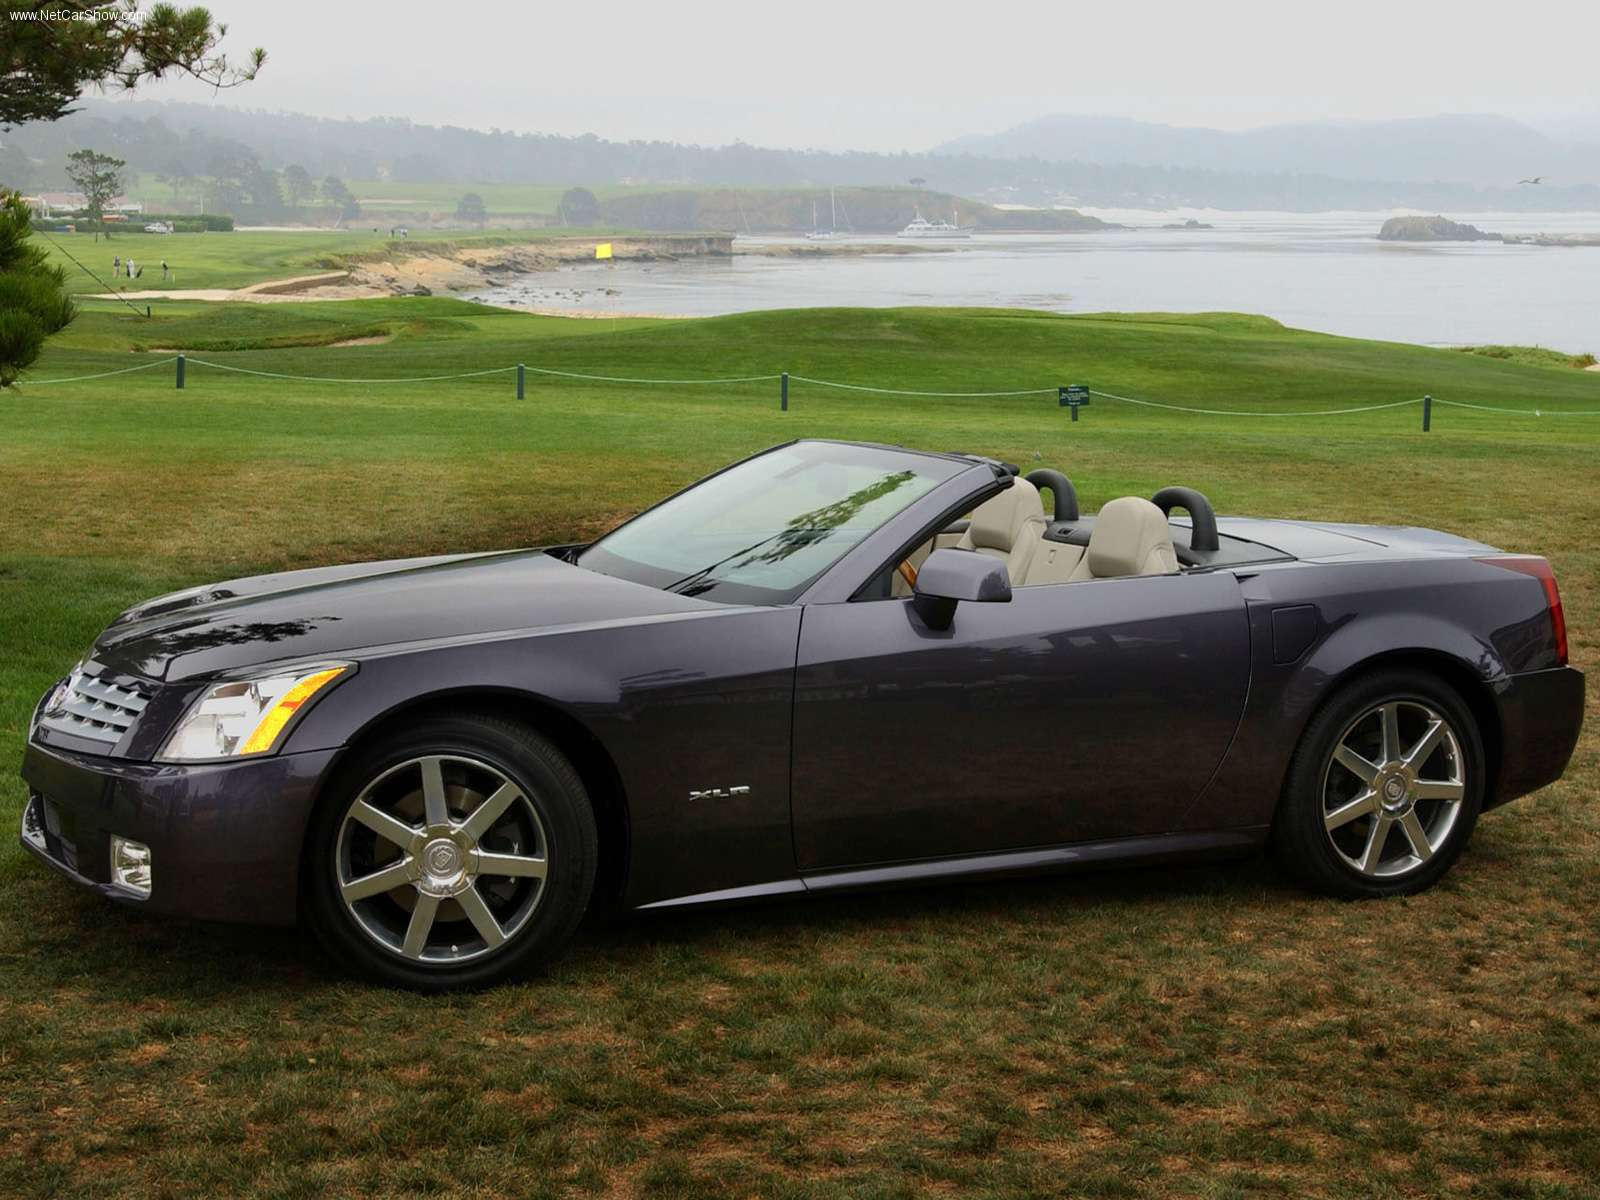 Cadillac Xlr Wiring Everything About Diagram For 2004 Image 6 Rh Zombdrive Com V Supercharged Srx